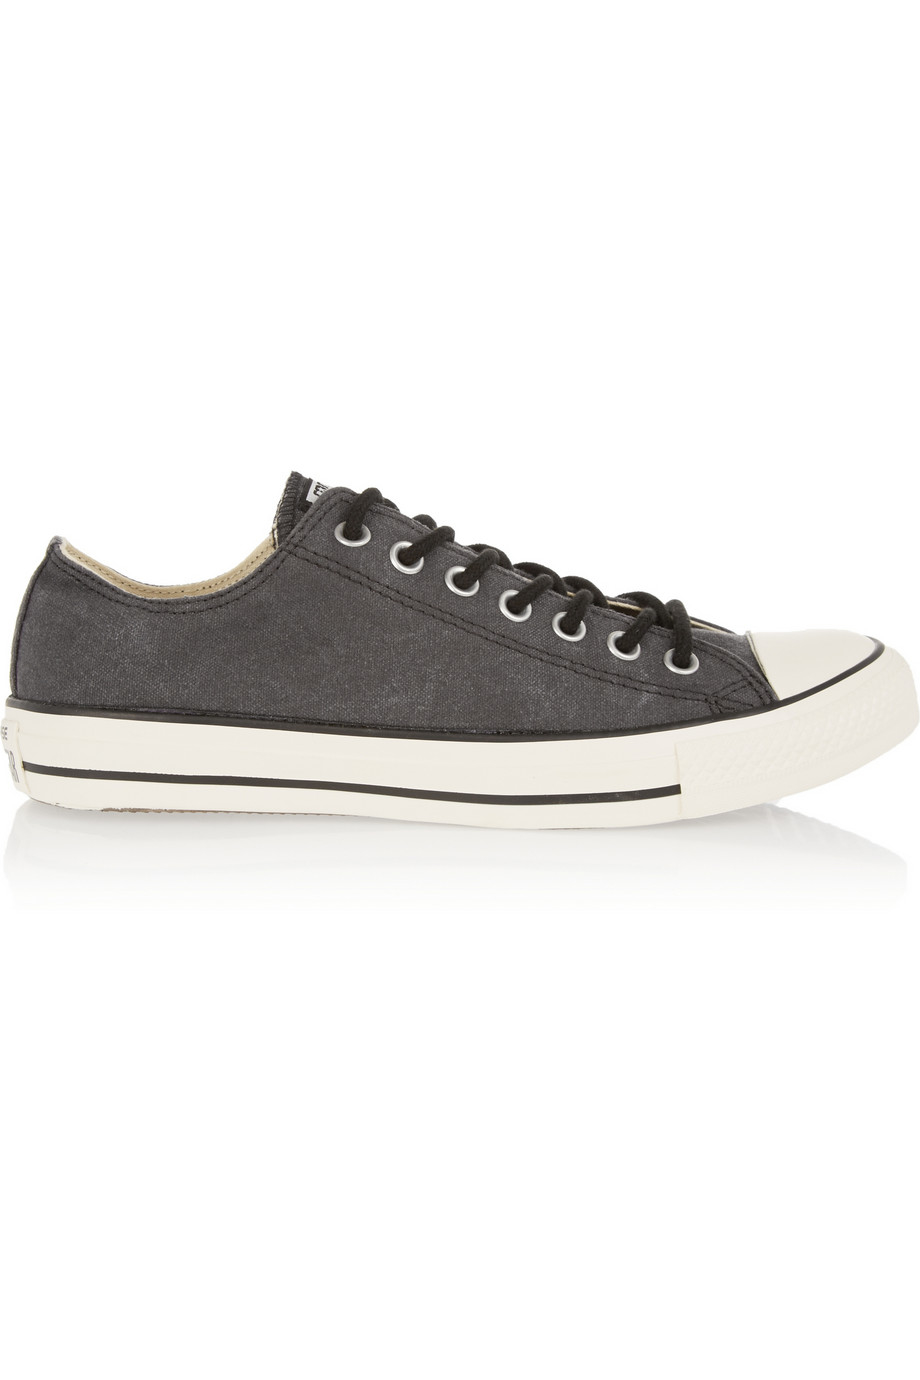 Converse chuck taylor canvas sneakers in gray lyst - Graue converse ...